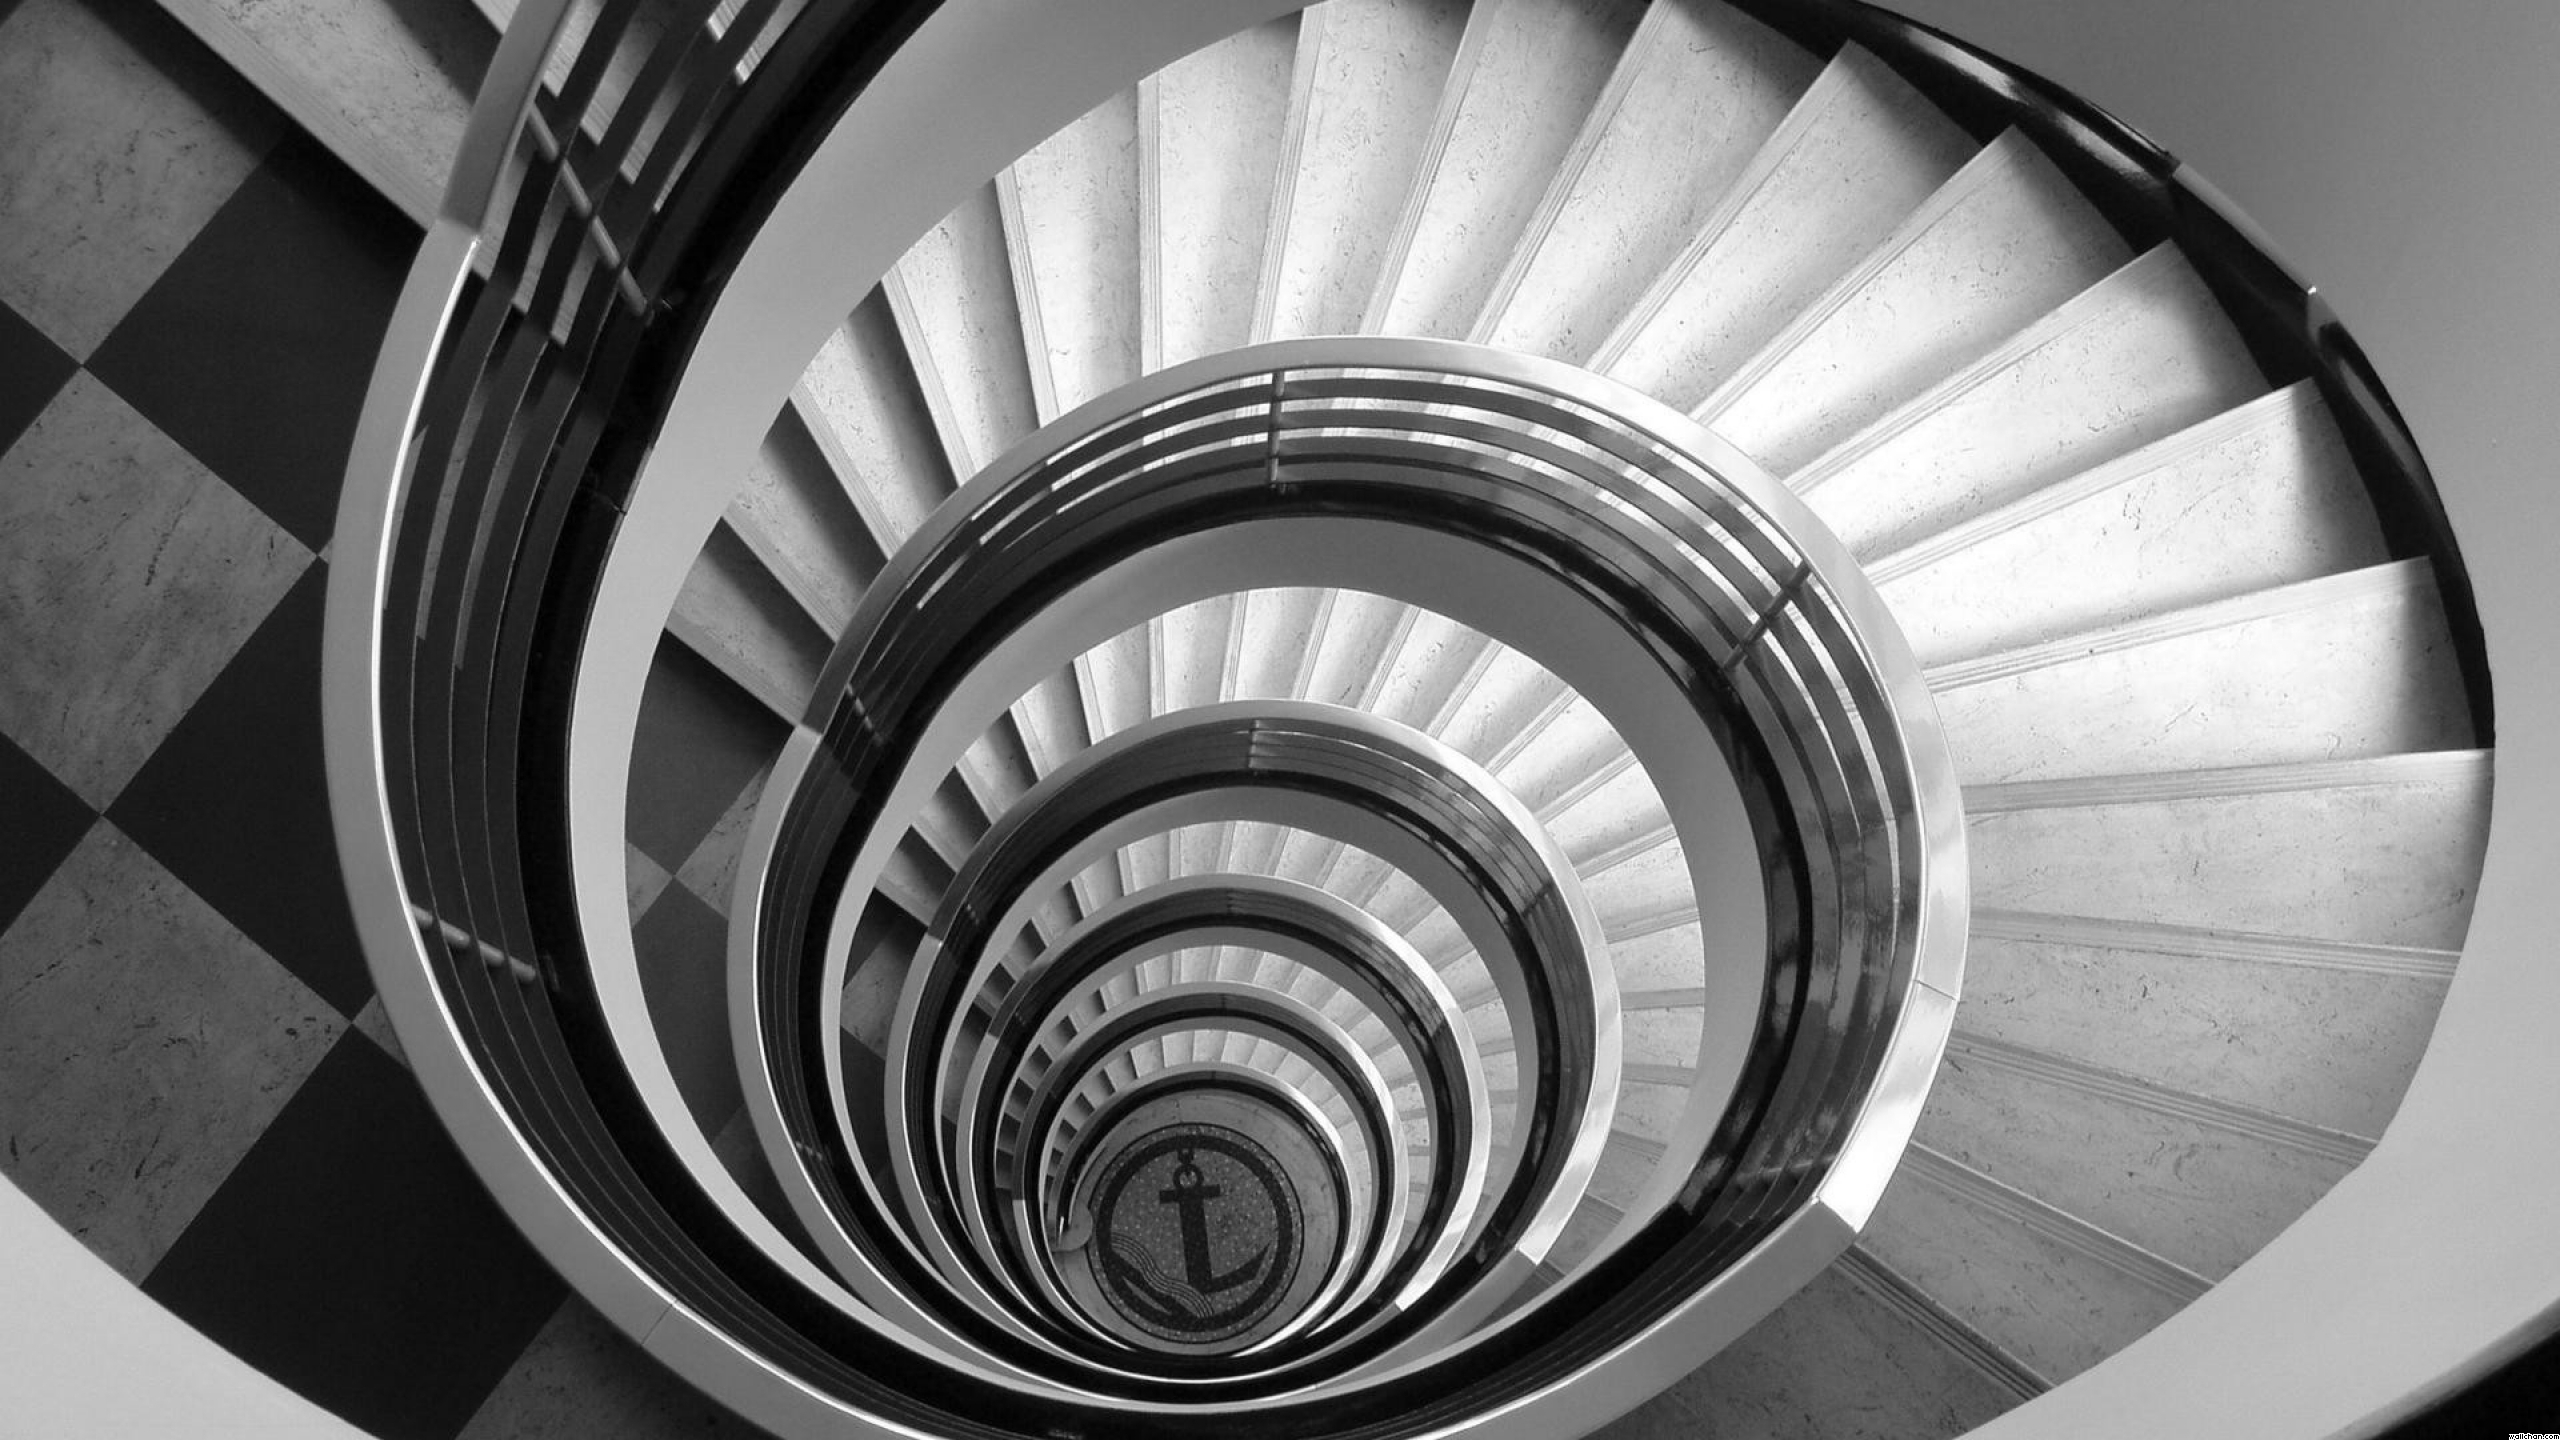 architecture sassoon come iconic stairs midst nin anais usually desk writing living adriana adrianasassoon